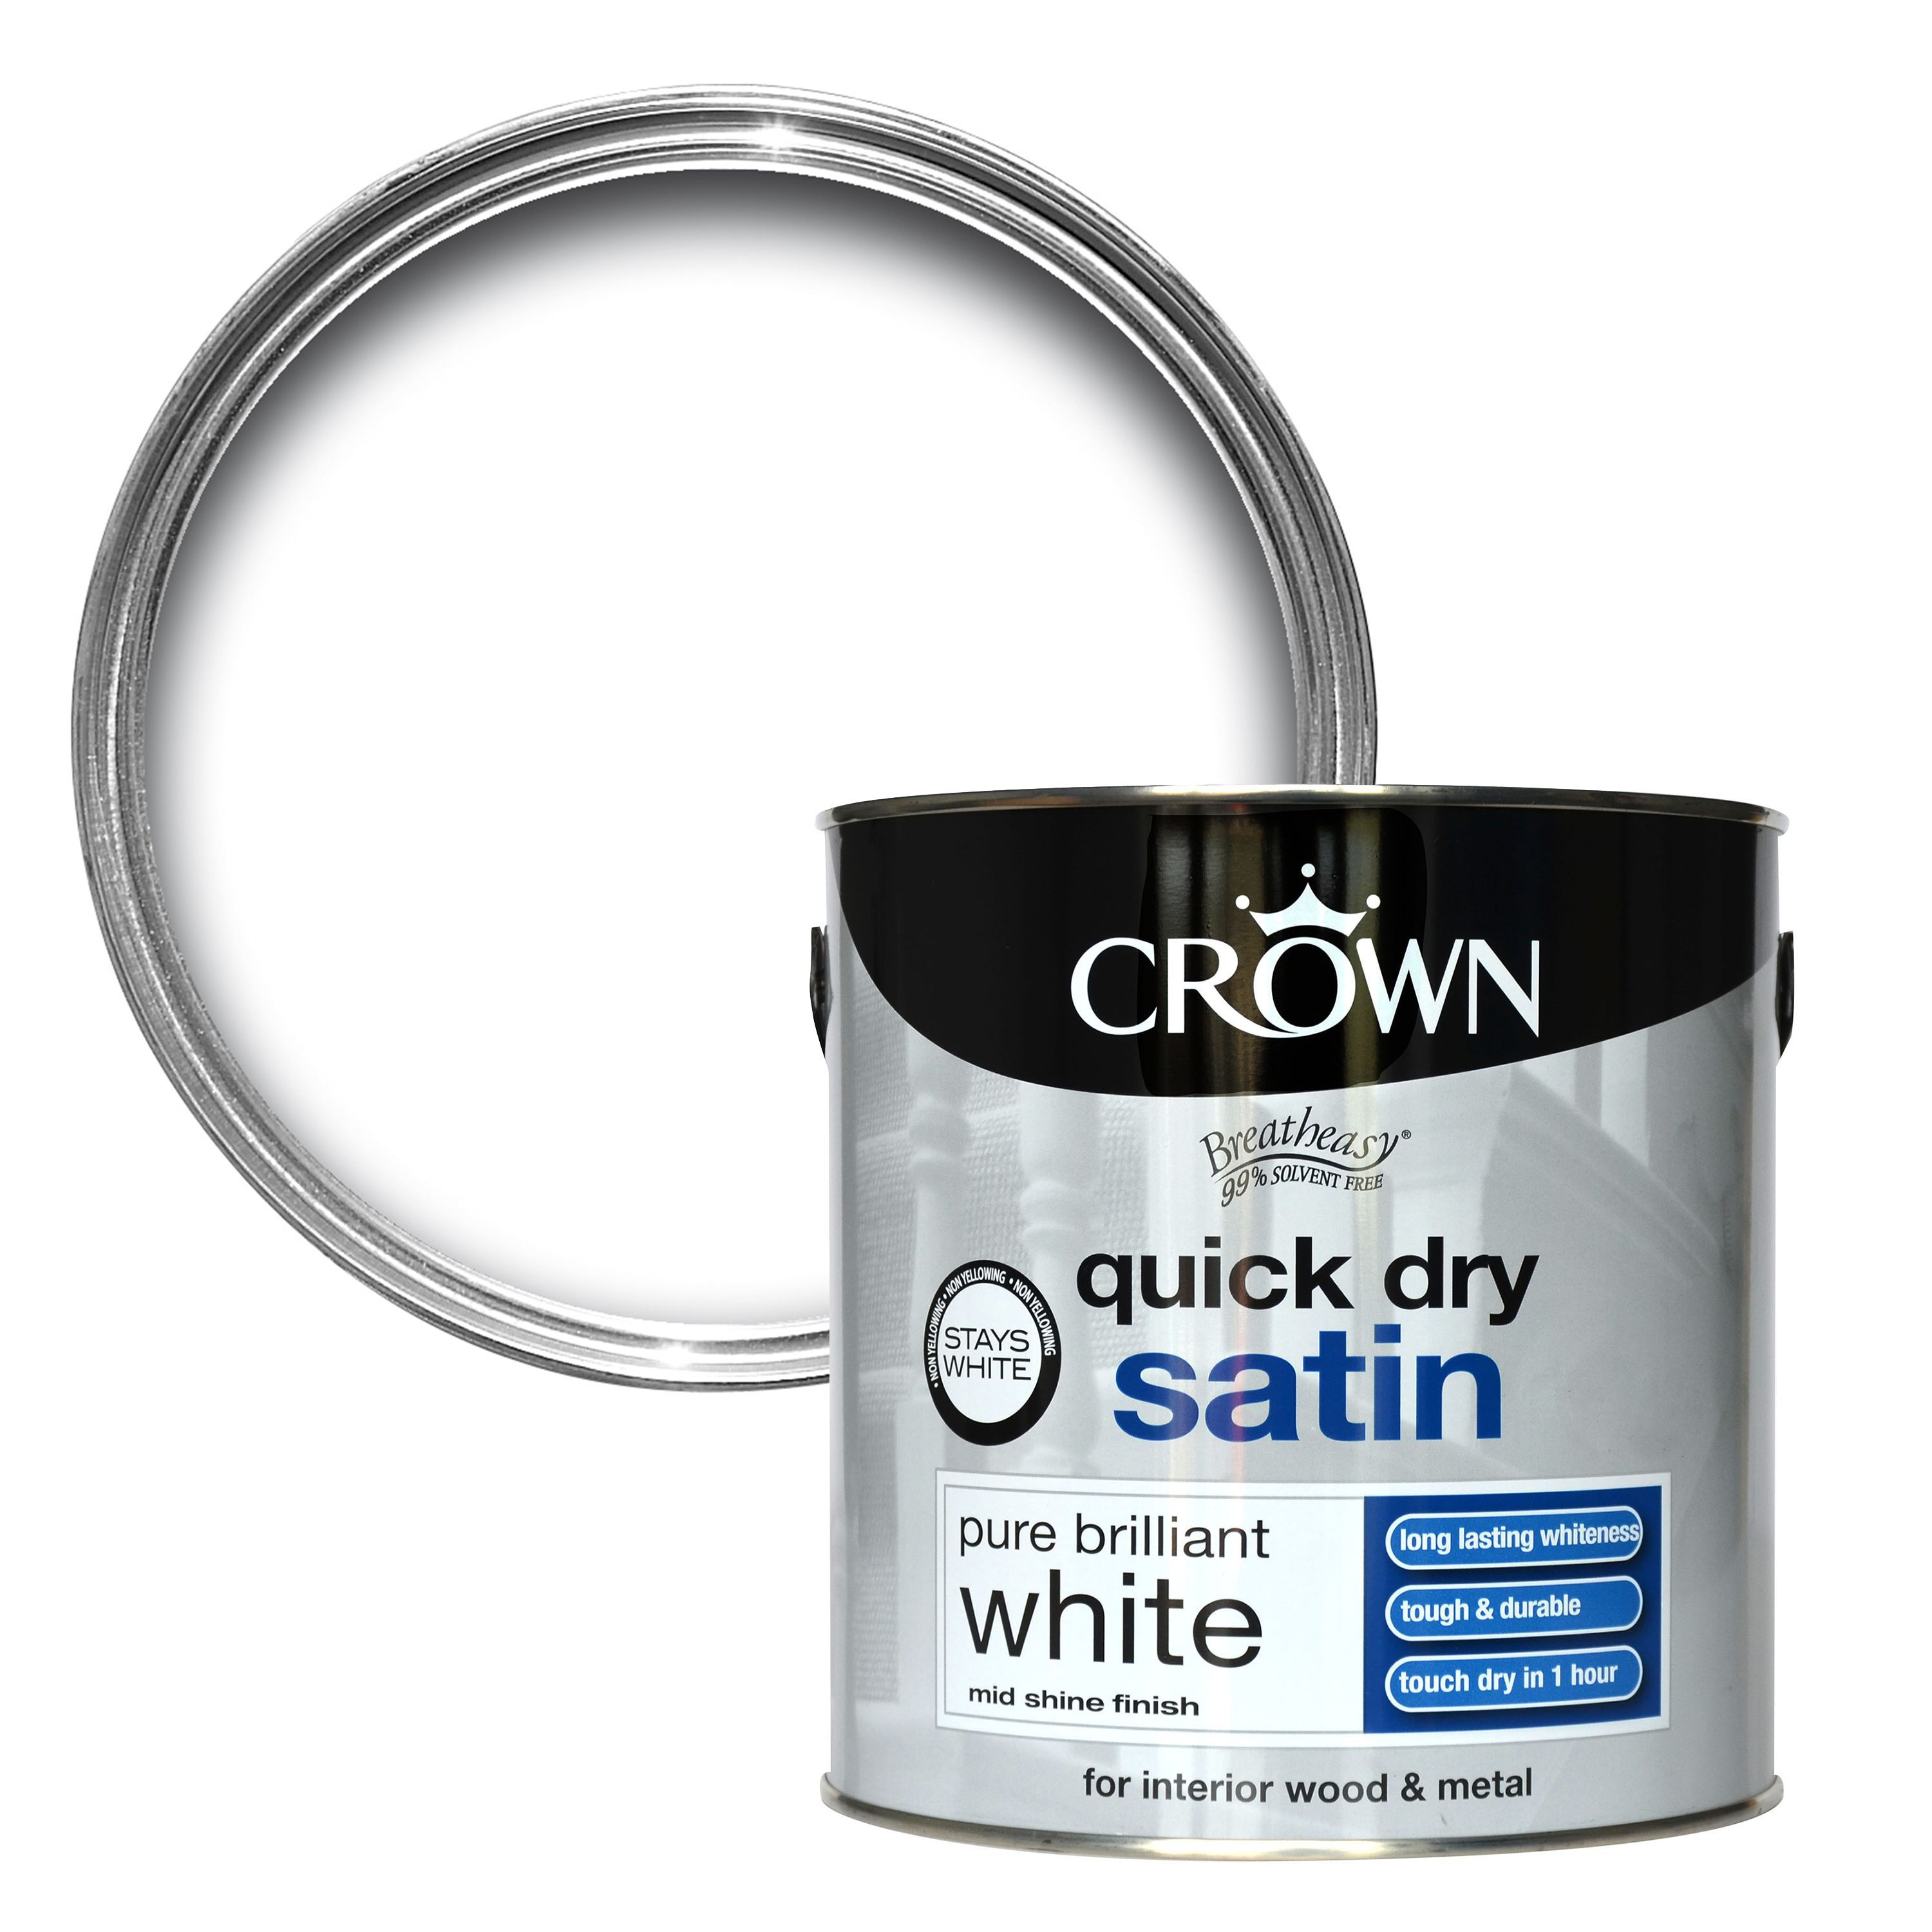 Crown Breatheasy Pure Brilliant White Satin Emulsion Paint 2.5l